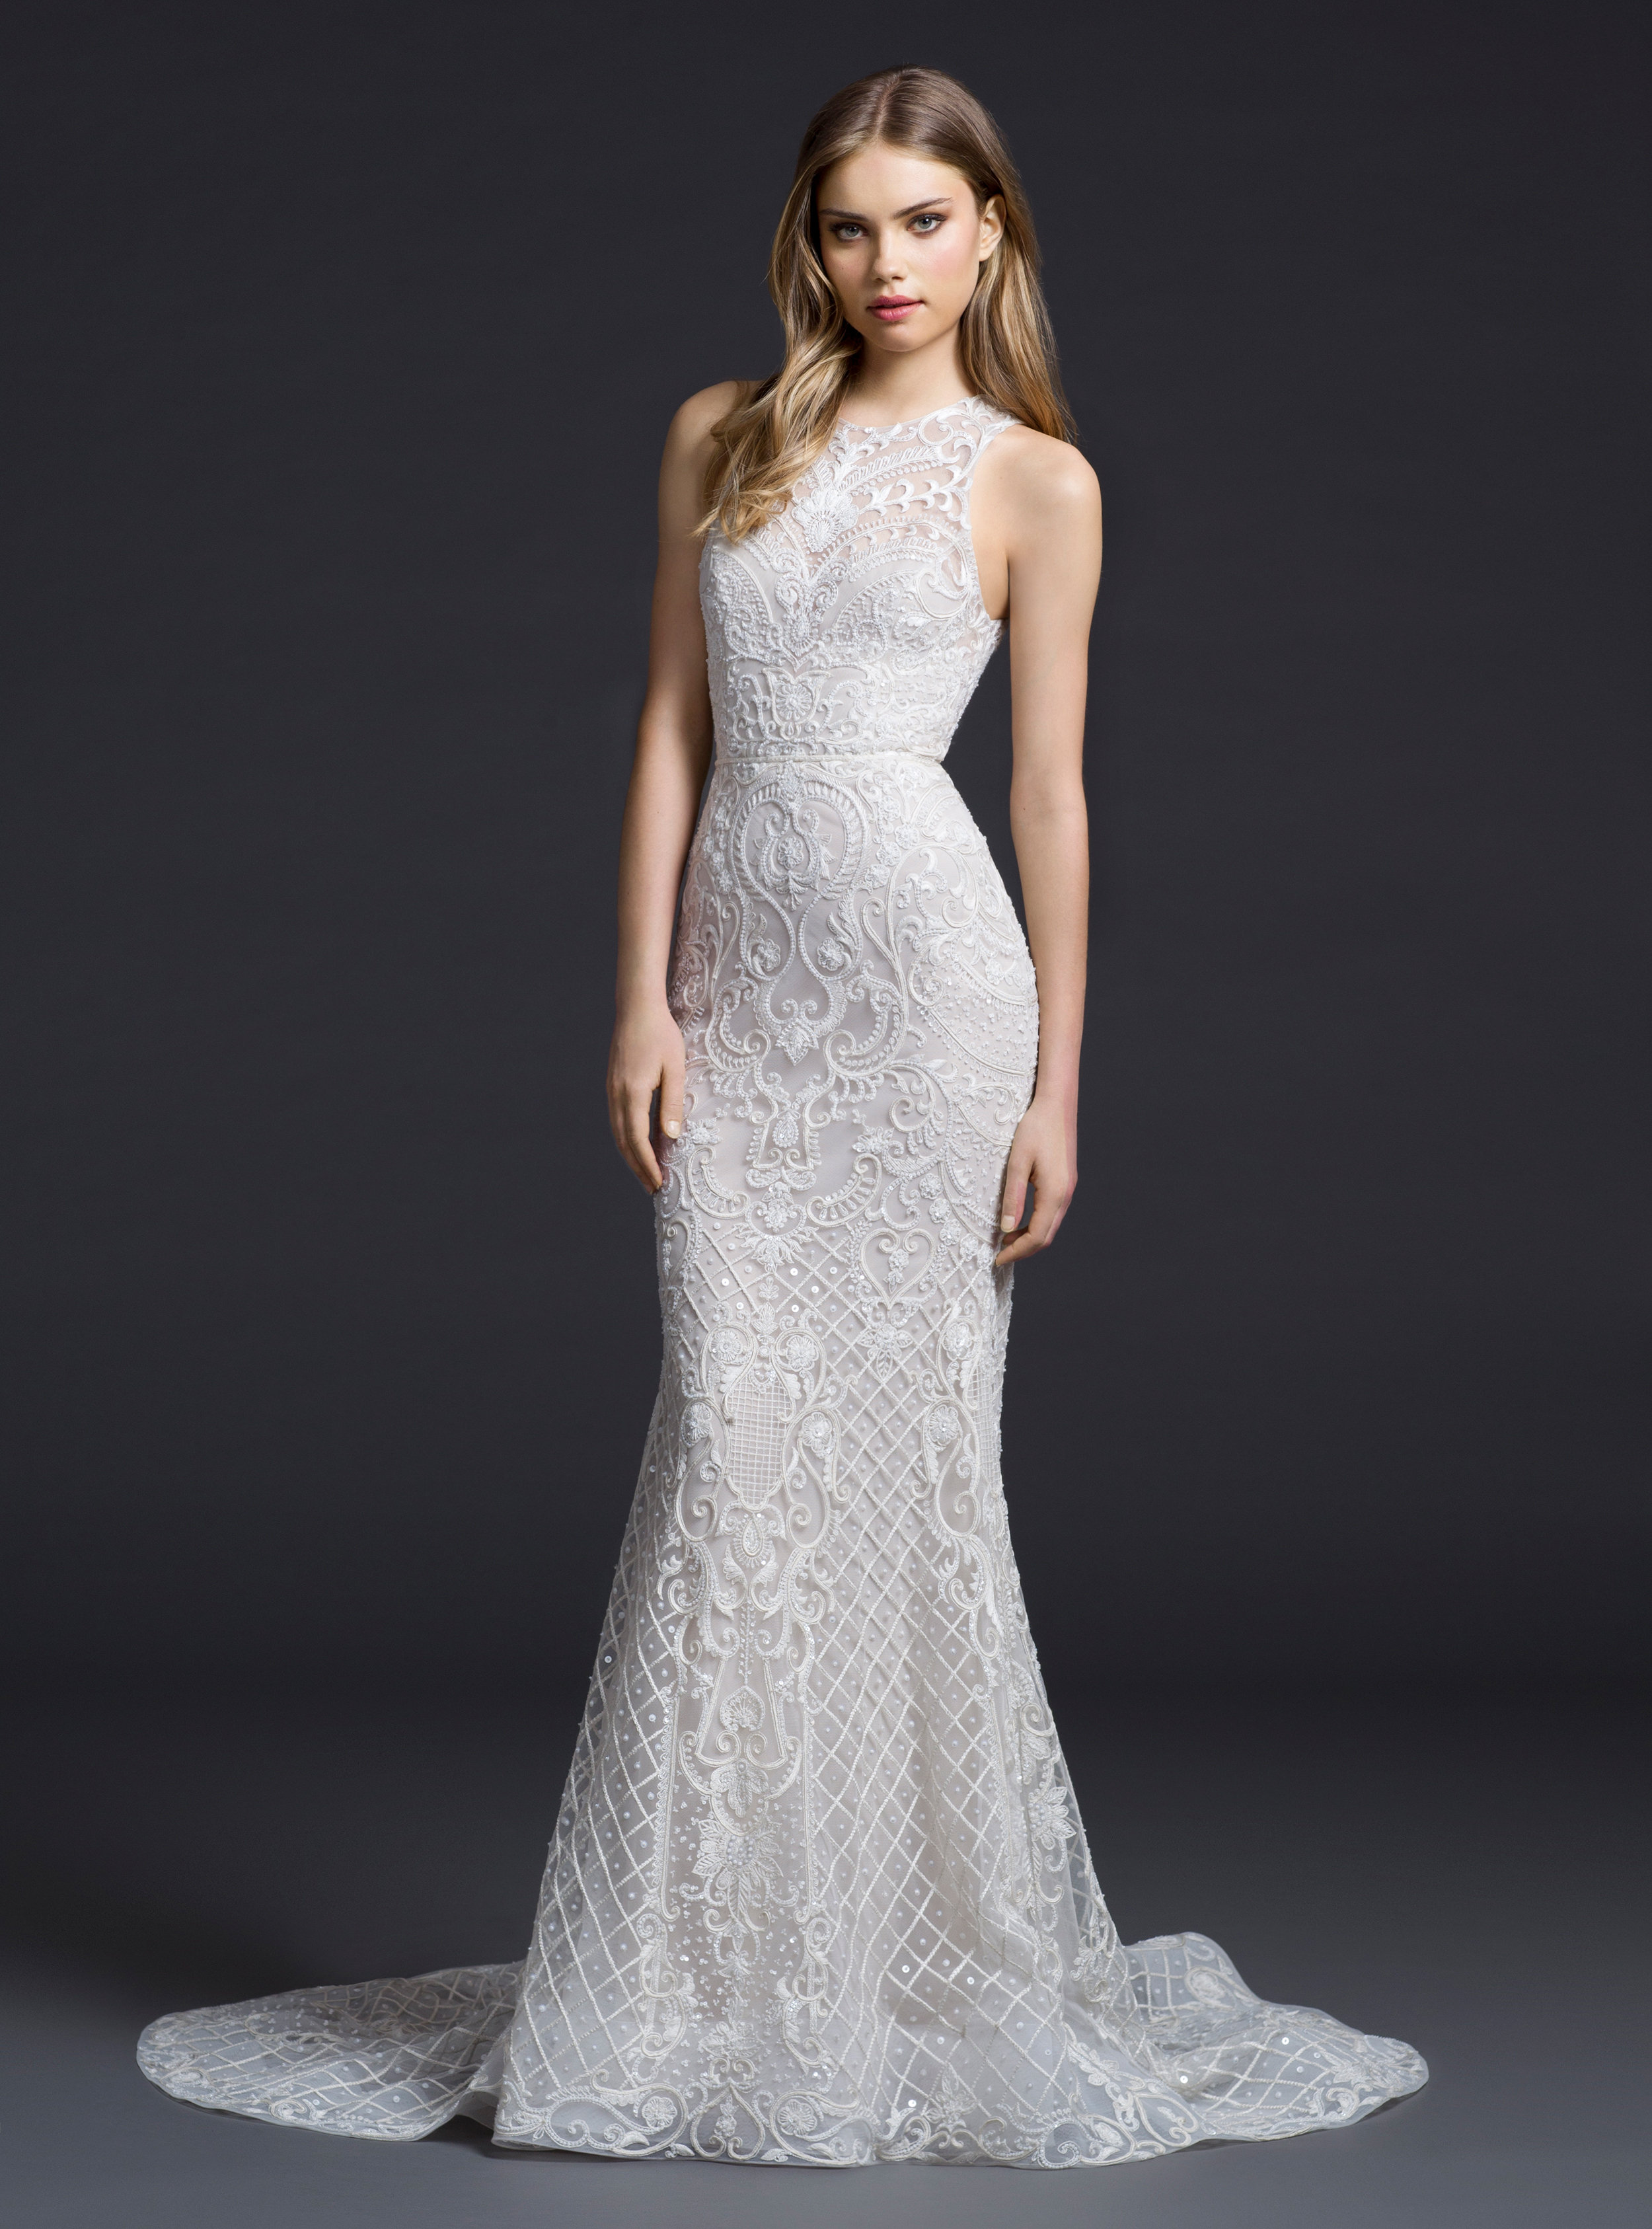 Bridal gowns and wedding dresses by jlm couture style 3651 for Where to buy lazaro wedding dresses